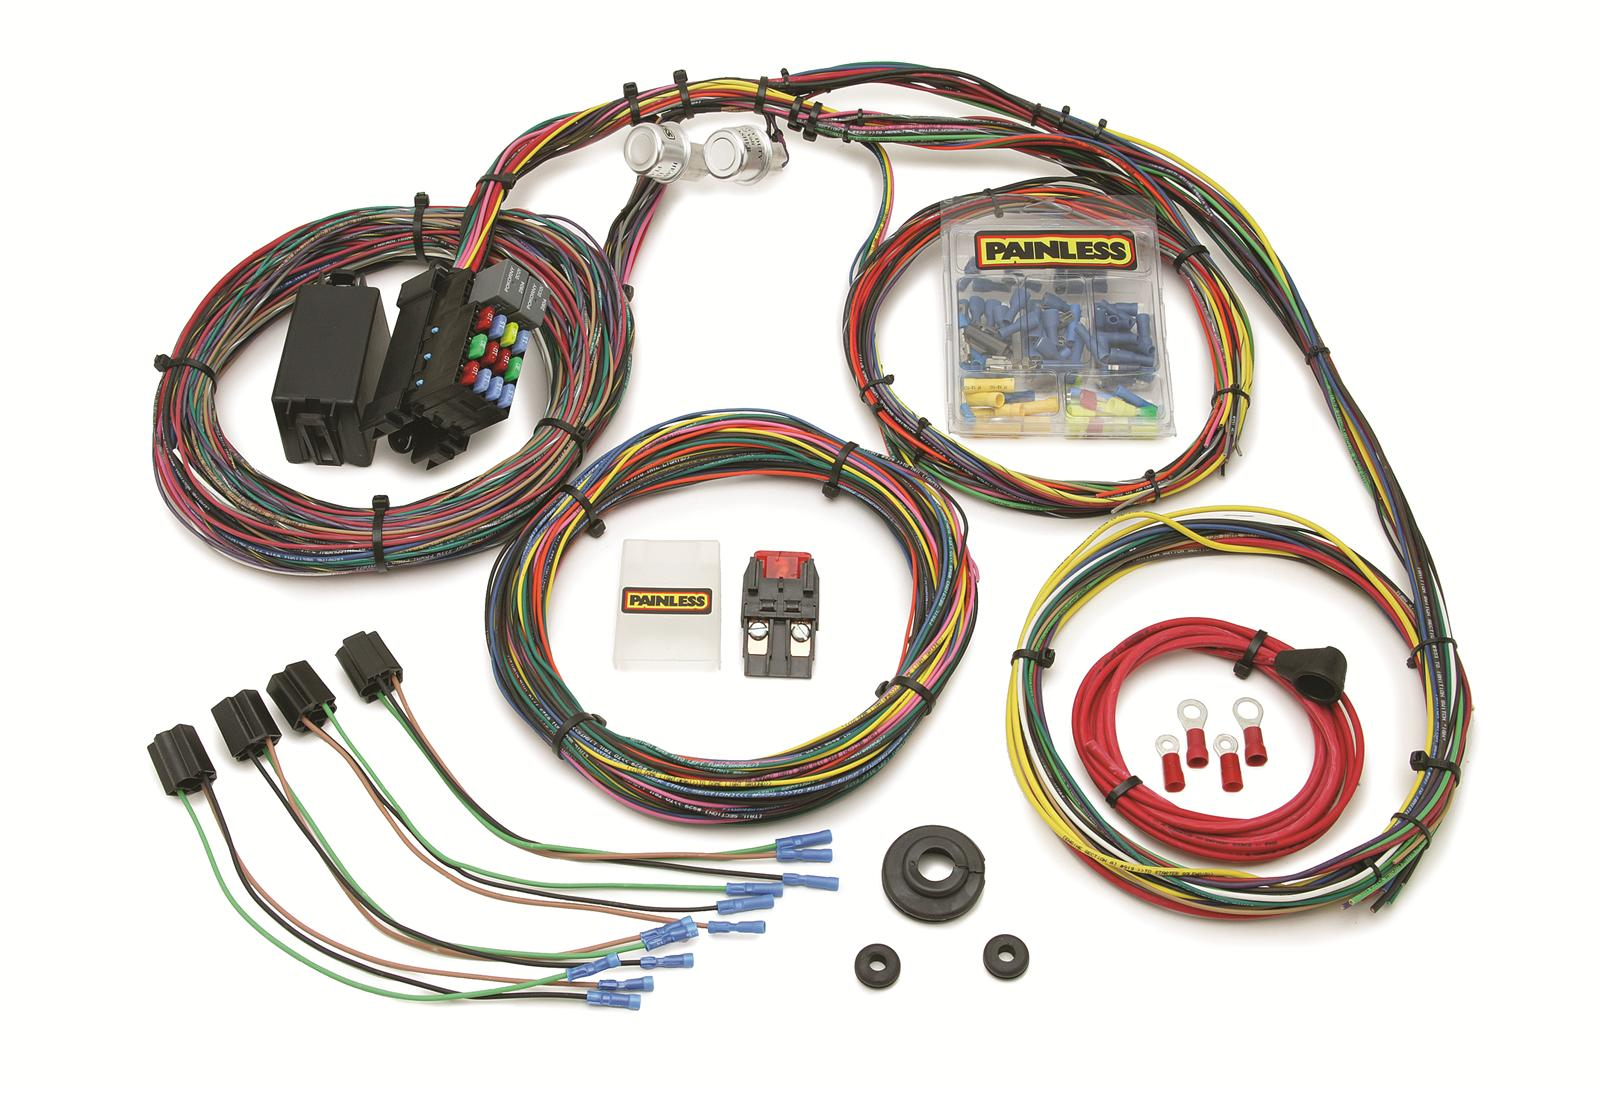 Painless Performance 21 Circuit Mopar Color Coded Universal Wiring 1976 Dodge Truck Harness Harnesses 10127 Free Shipping On Orders Over 99 At Summit Racing